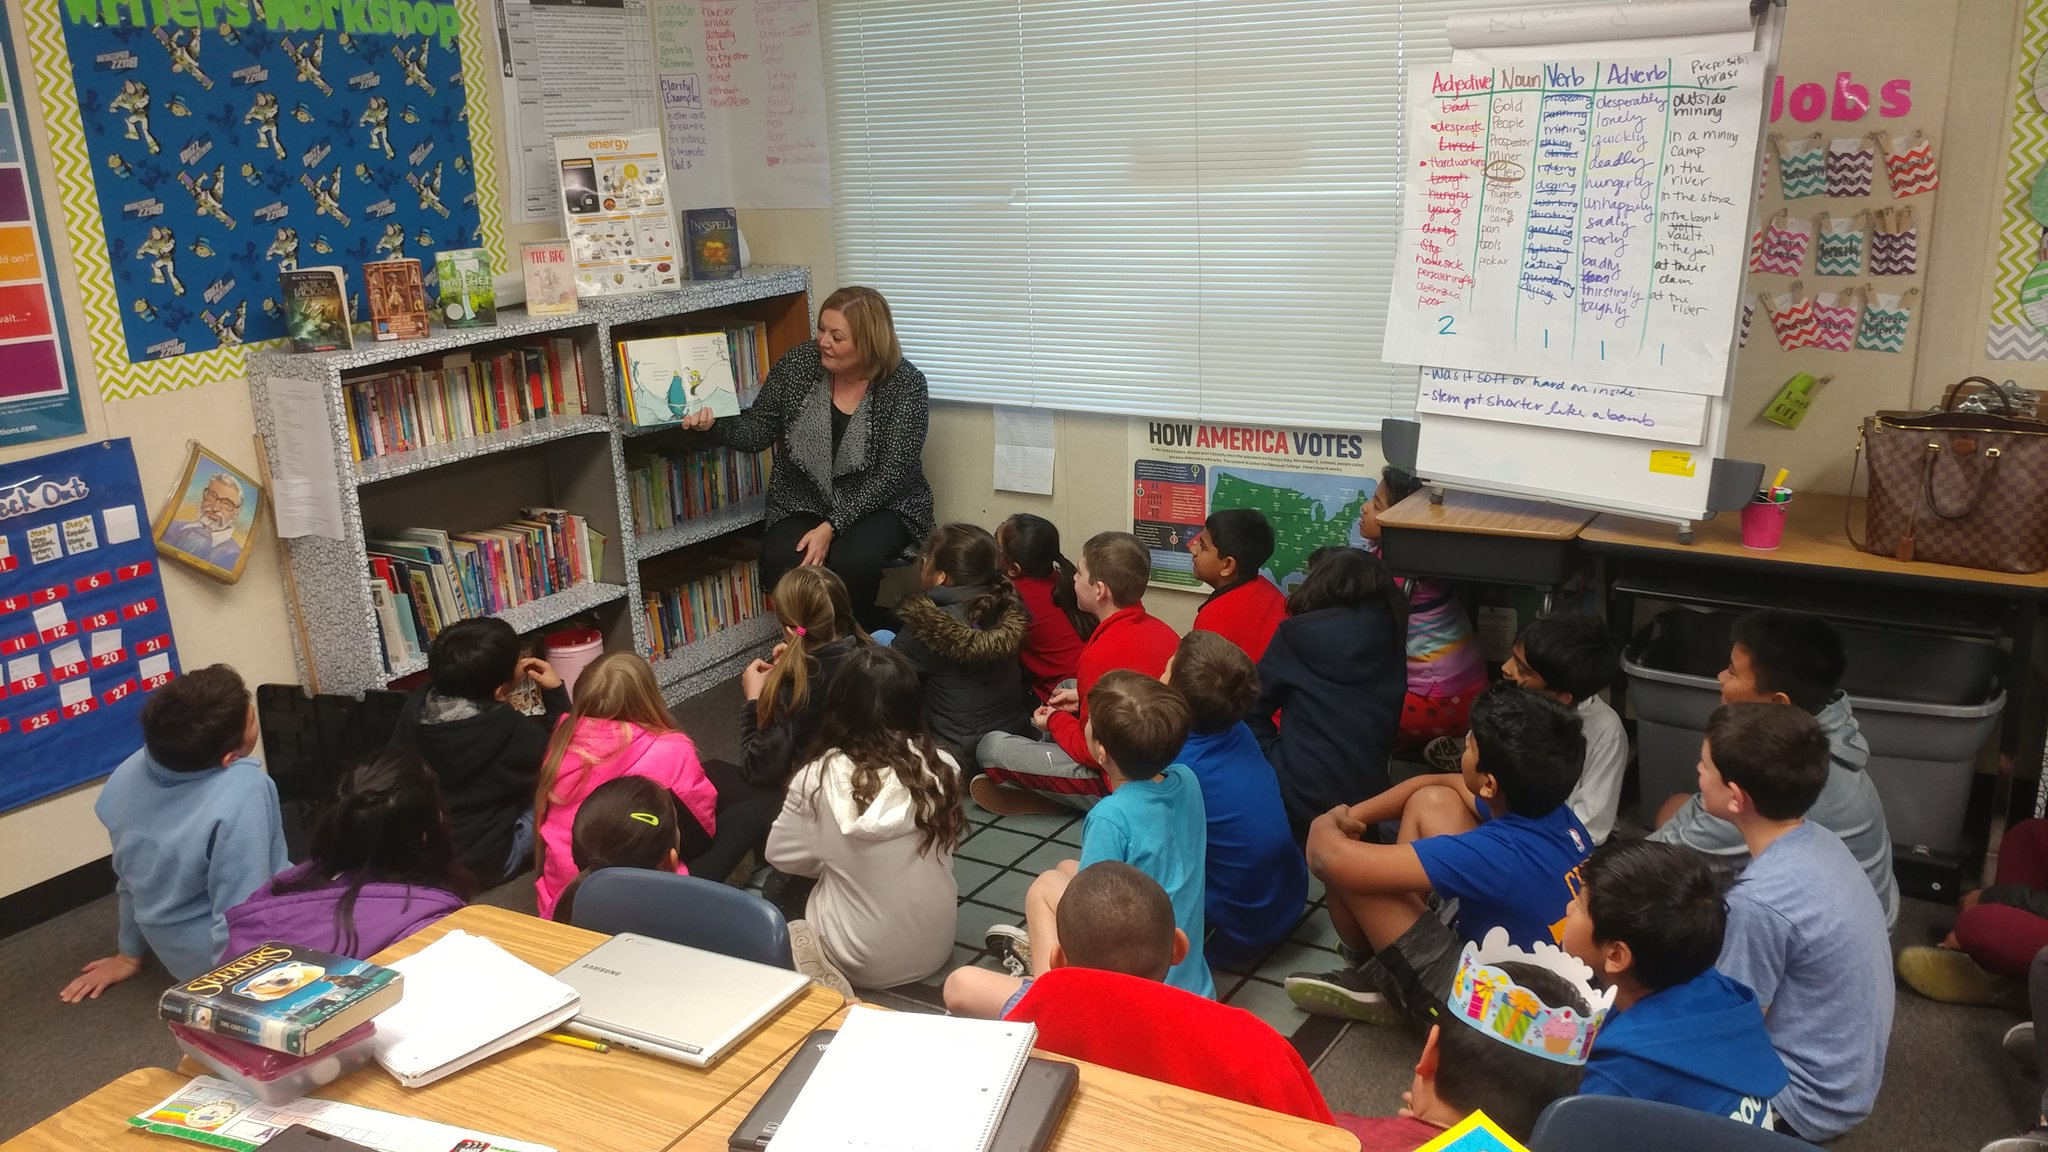 #ReadAcrossAmerica Day! @DUSDSupt visited room 25 to read a childhood fave by #DrSeuss #JDSDolphins @DUSD4kids https://t.co/K6mCWHZUvP